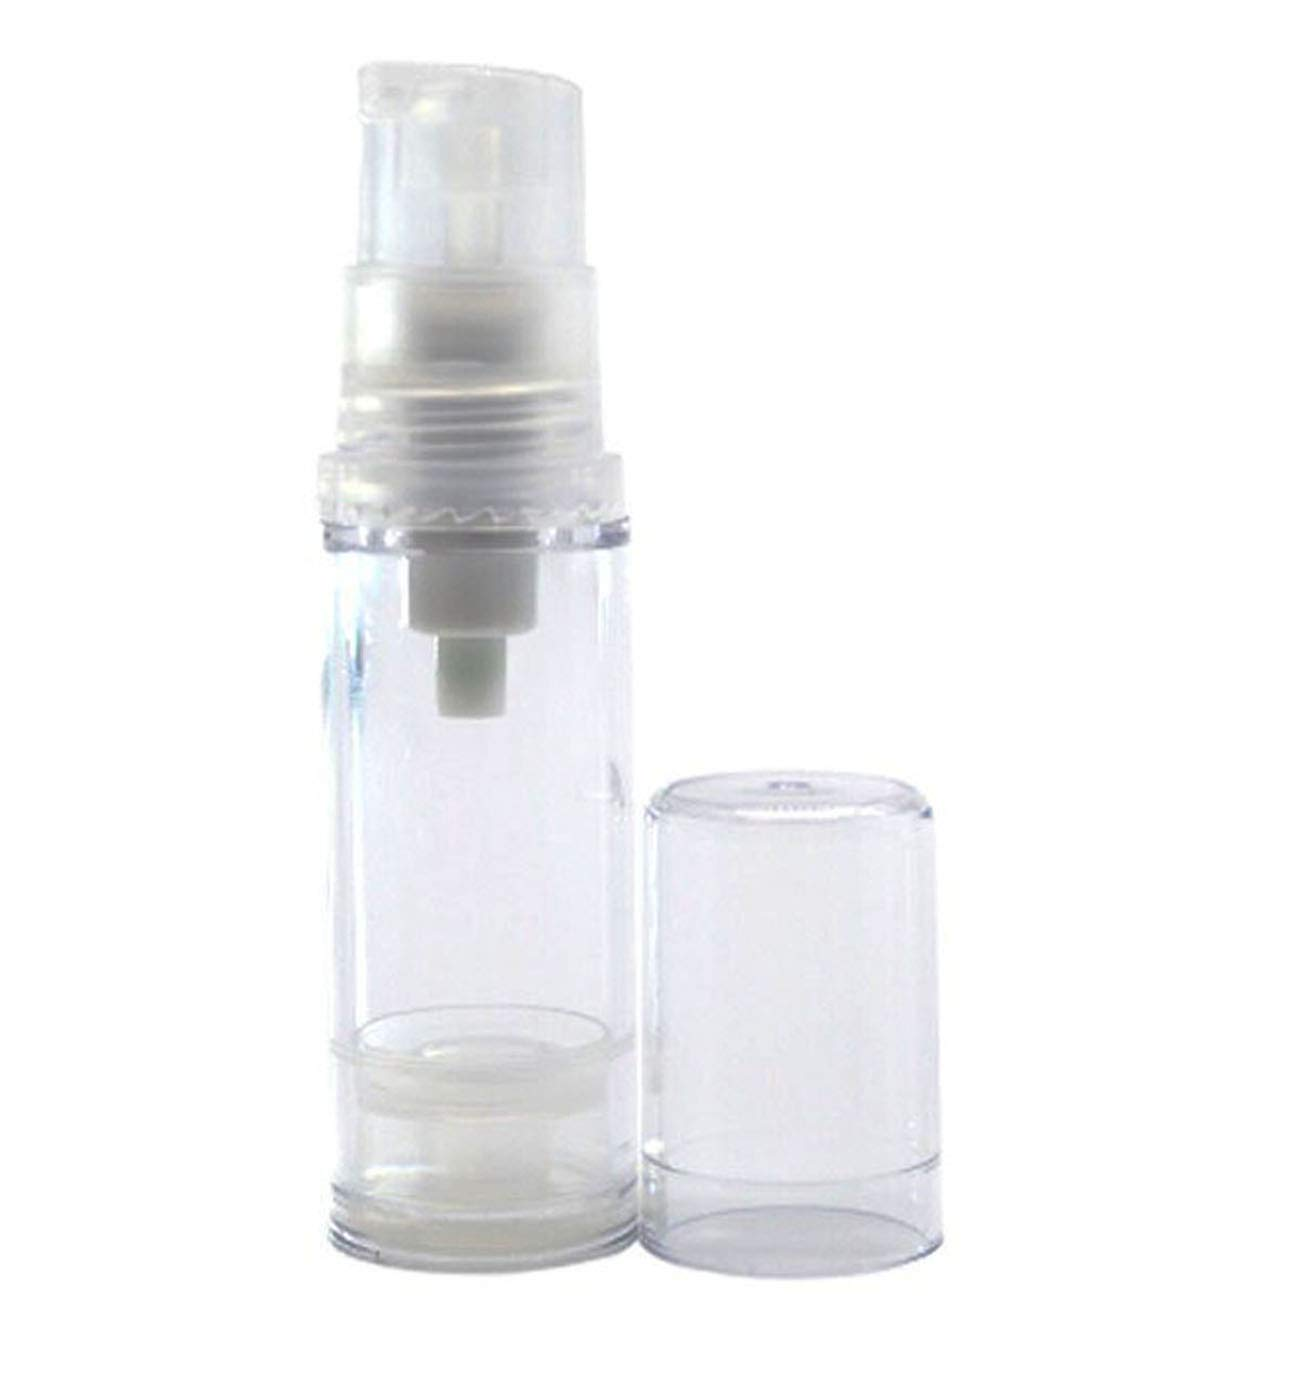 TOPWEL 5ml Empty Clear Refillable Airless Vacuum Pump Cream Lotion Bottle (10PCS)